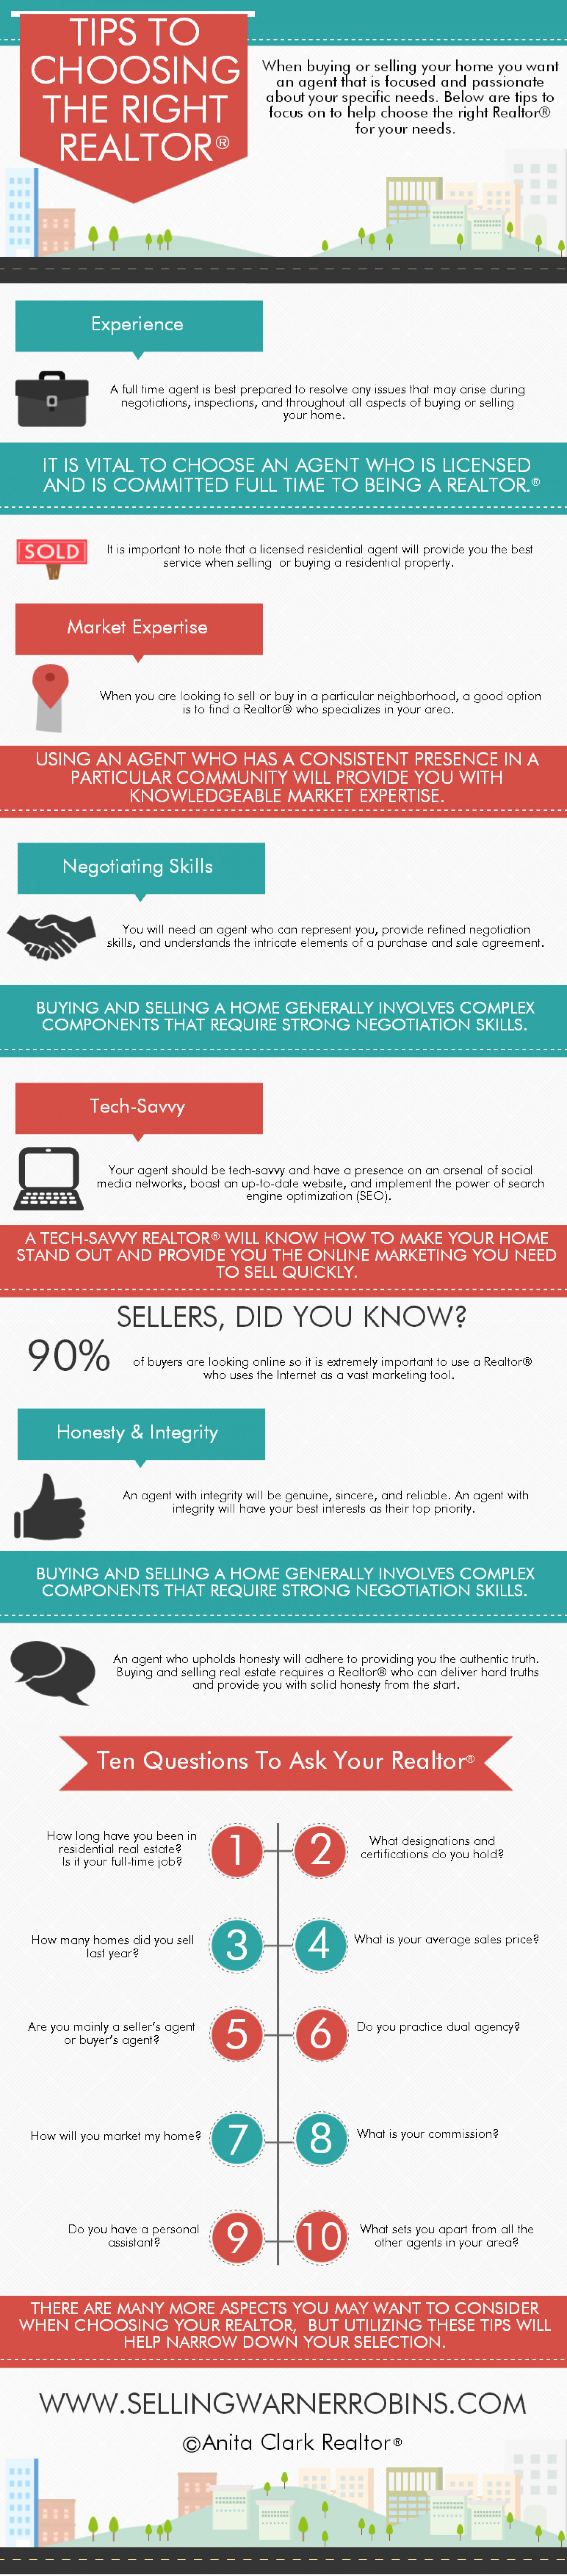 Tips to Choosing the Right Realtor Infographic